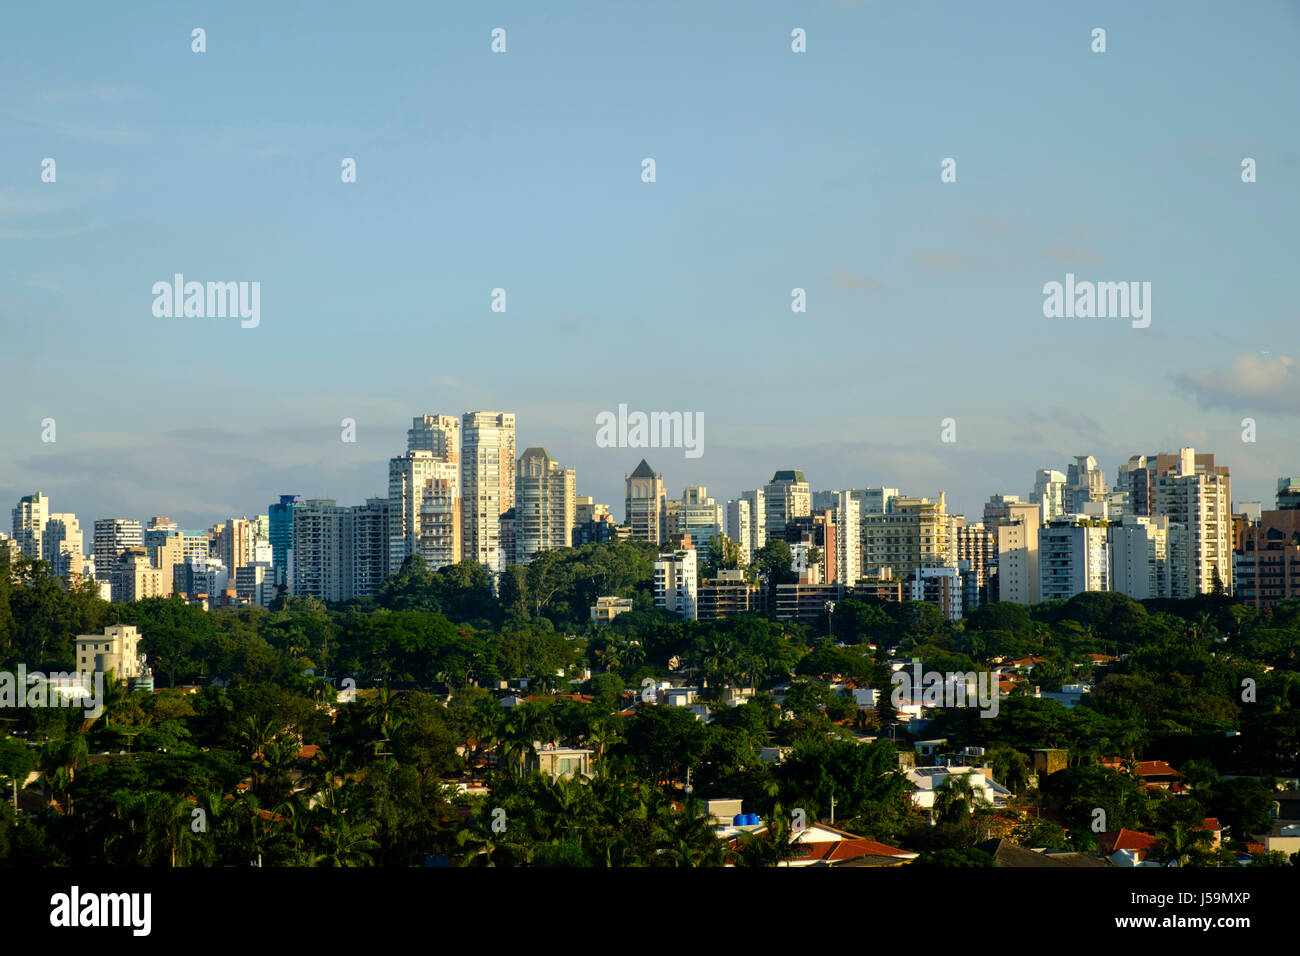 Urban skyline of Sao Paulo showing apartment blocks and forested parkland in the foreground - Stock Image